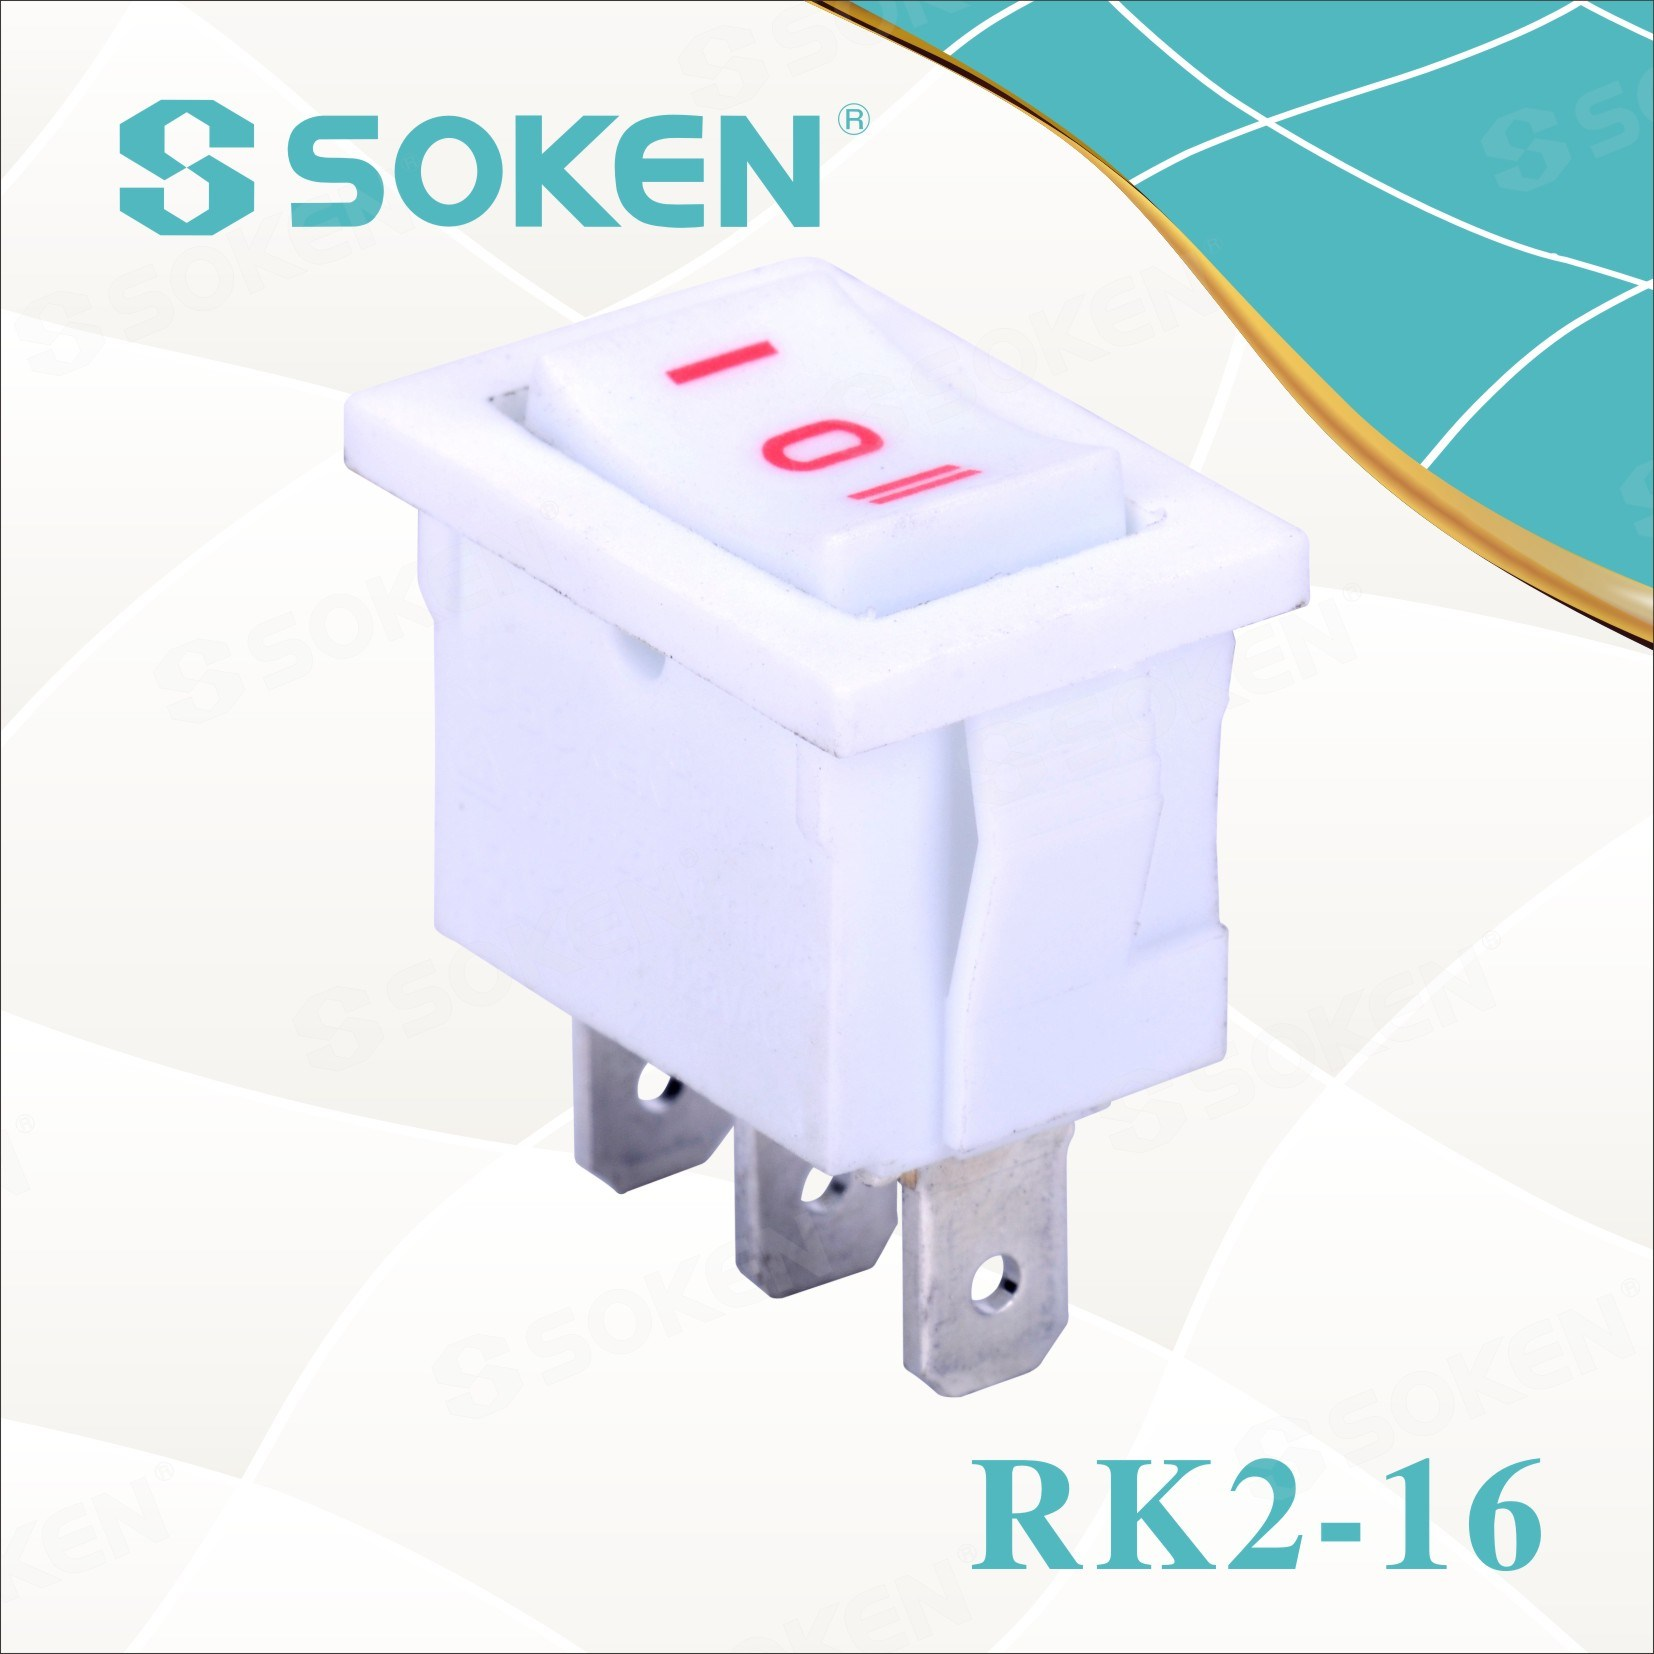 Sokne Rk2-16 1X3 on off on kango Pindah